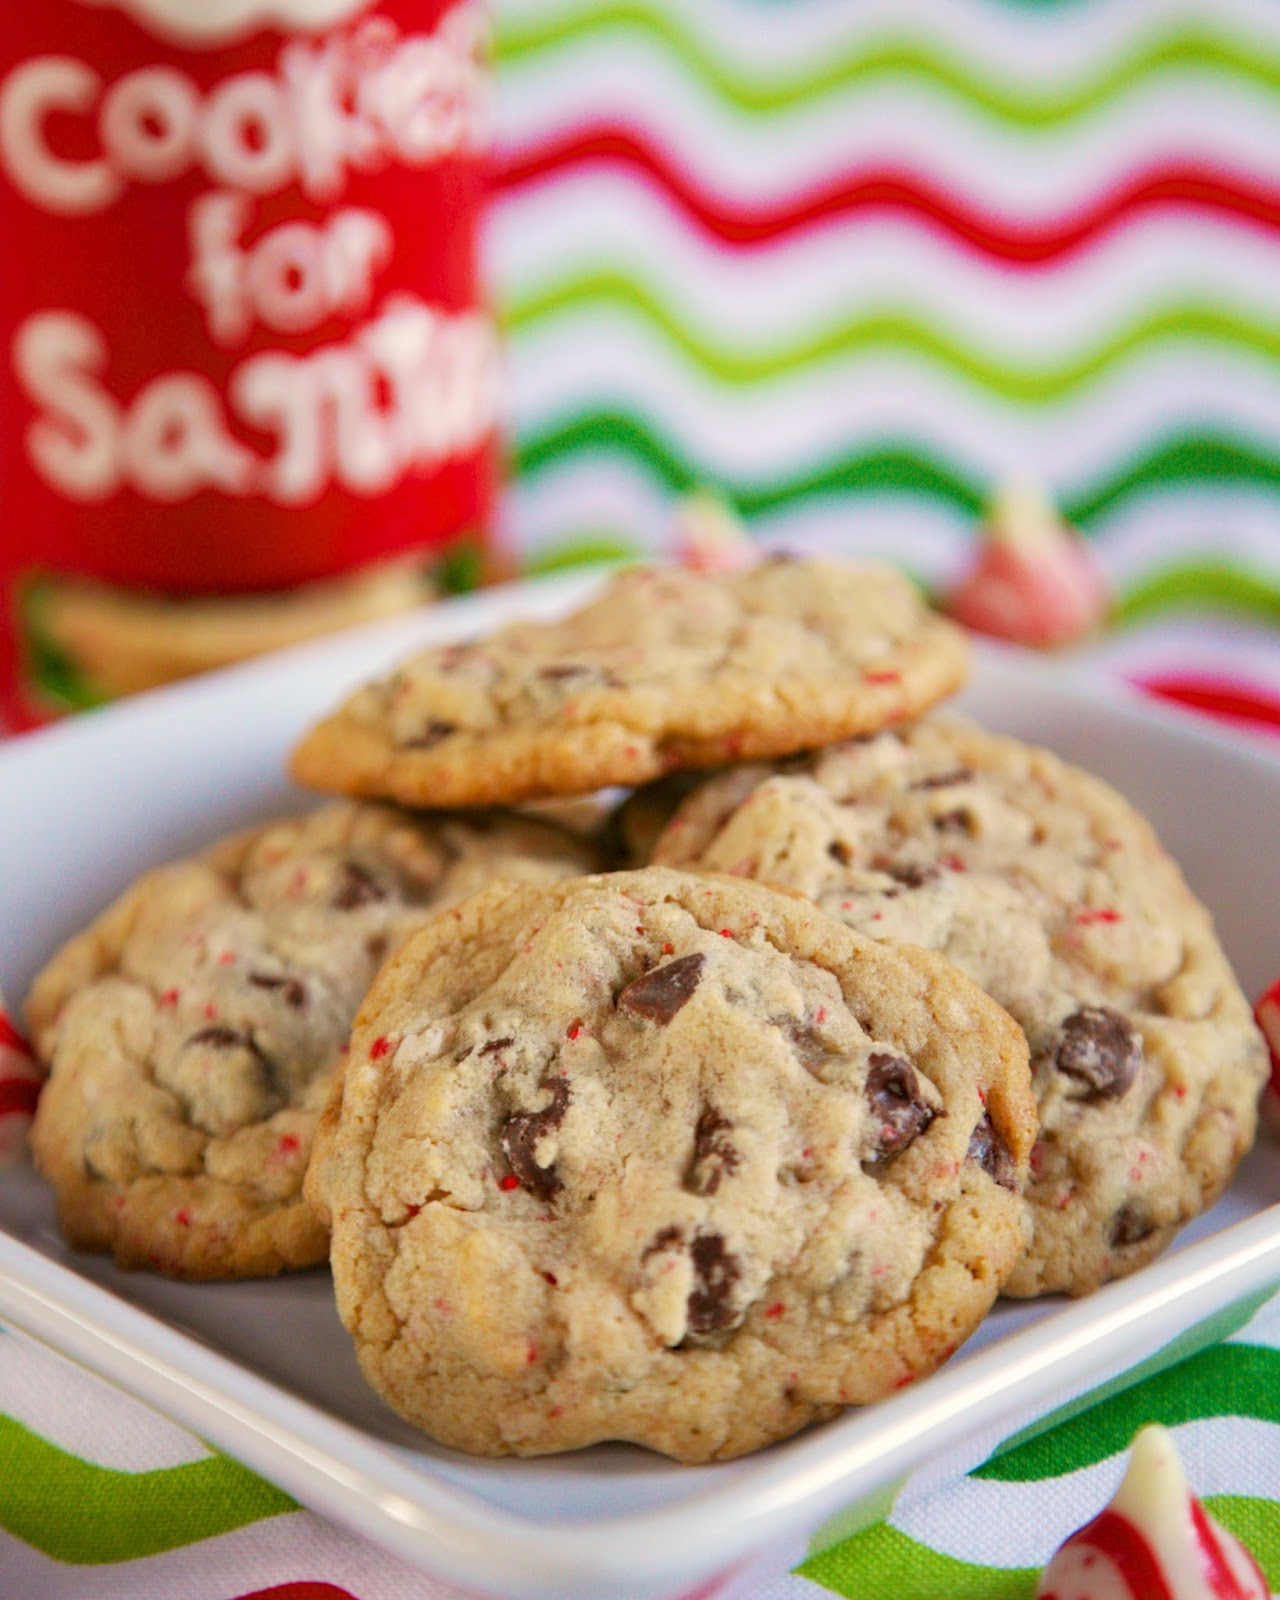 Candy Cane Kiss Chocolate Chip Cookies - chopped up candy cane kisses and chocolate chips combine to make a festive and delicious treat. Great addition to your holiday cookie tray! Everyone always asks for the recipe!!! A delicious holiday cookie recipe!